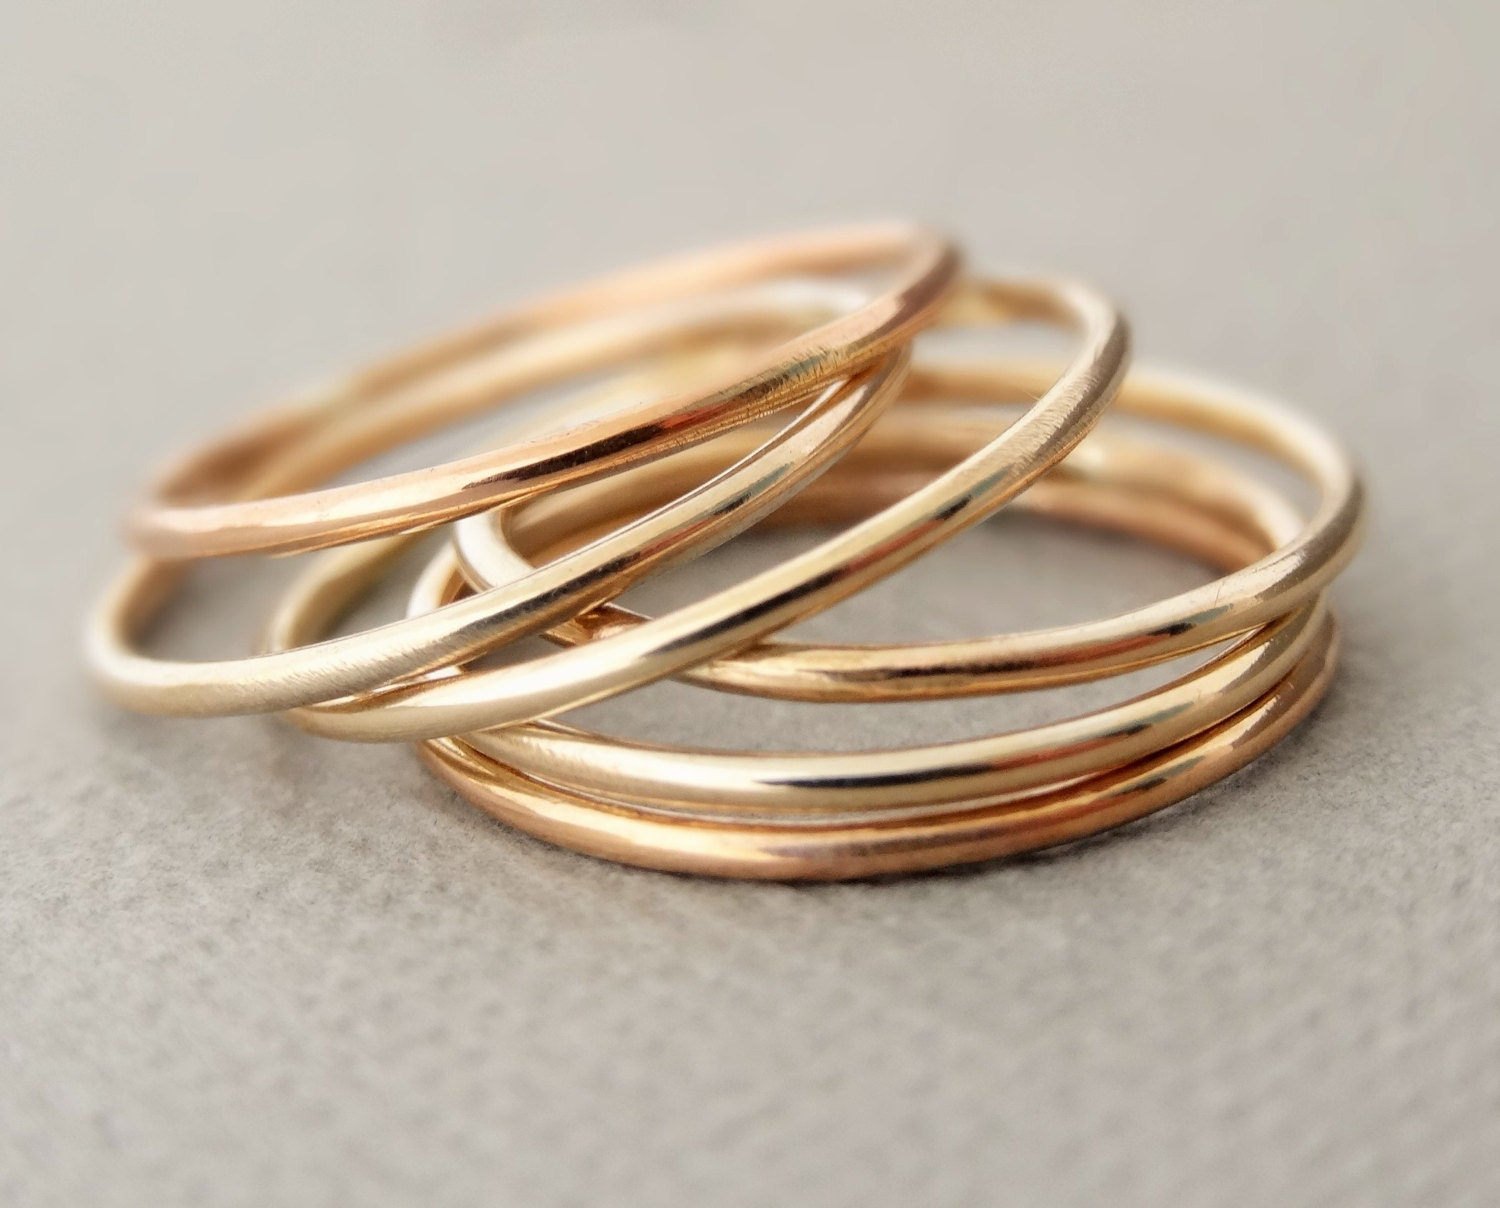 Super Thin Gold Rings Rose Gold Ring Or Gold Ring Thumb Ring. Personalised Bangle Bracelet. Zulu Watches. Adjustable Necklace. October Necklace. Emerald Cut Stud Earrings. Extra Large Lockets. Rare Stone Engagement Rings. Nickel Free Stud Earrings